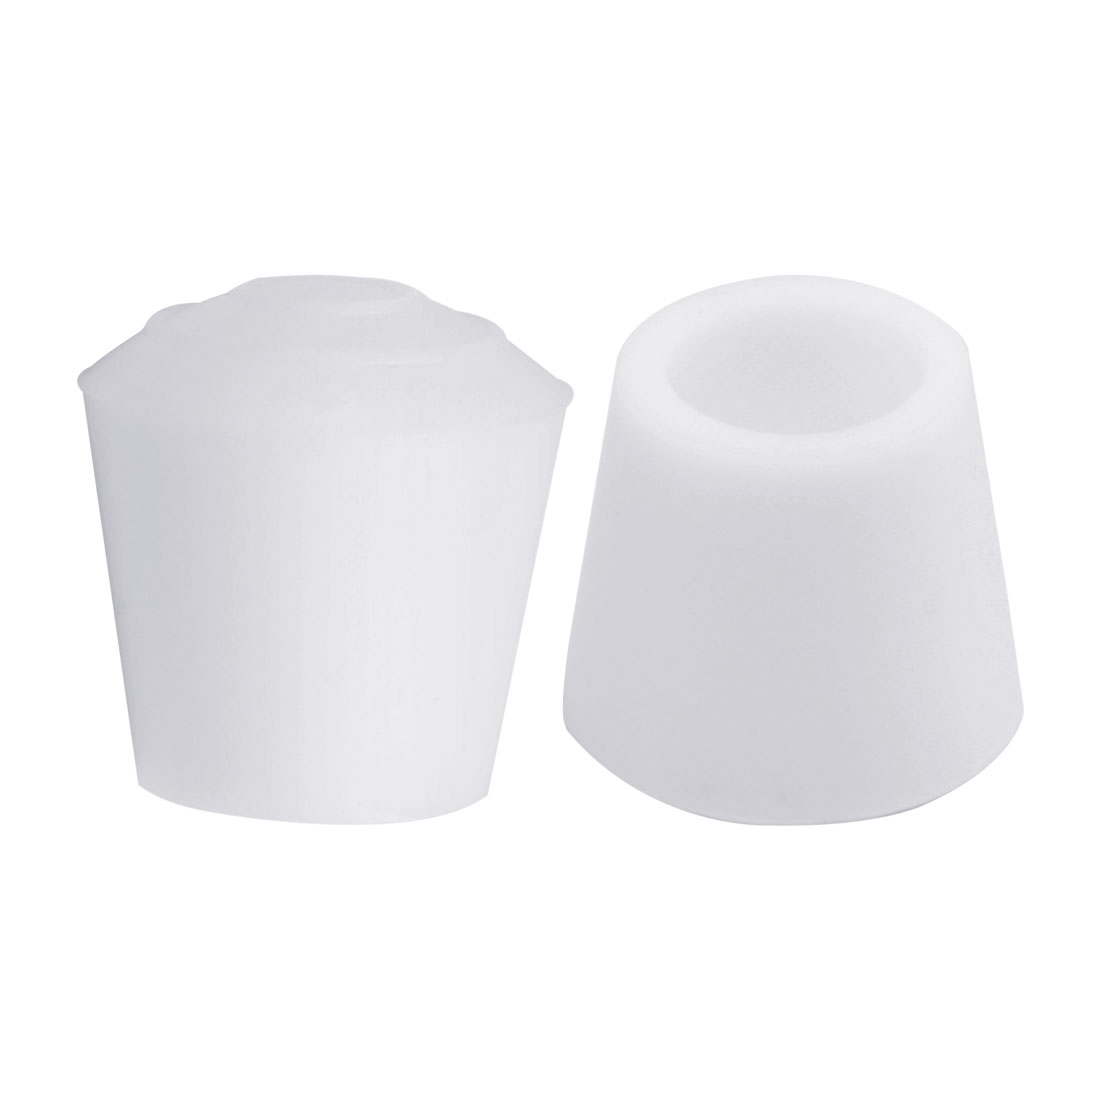 "Rubber Leg Cap Tip Cup Feet Cover 12mm 1/2"" Inner Dia 2pcs for Furniture Desk"